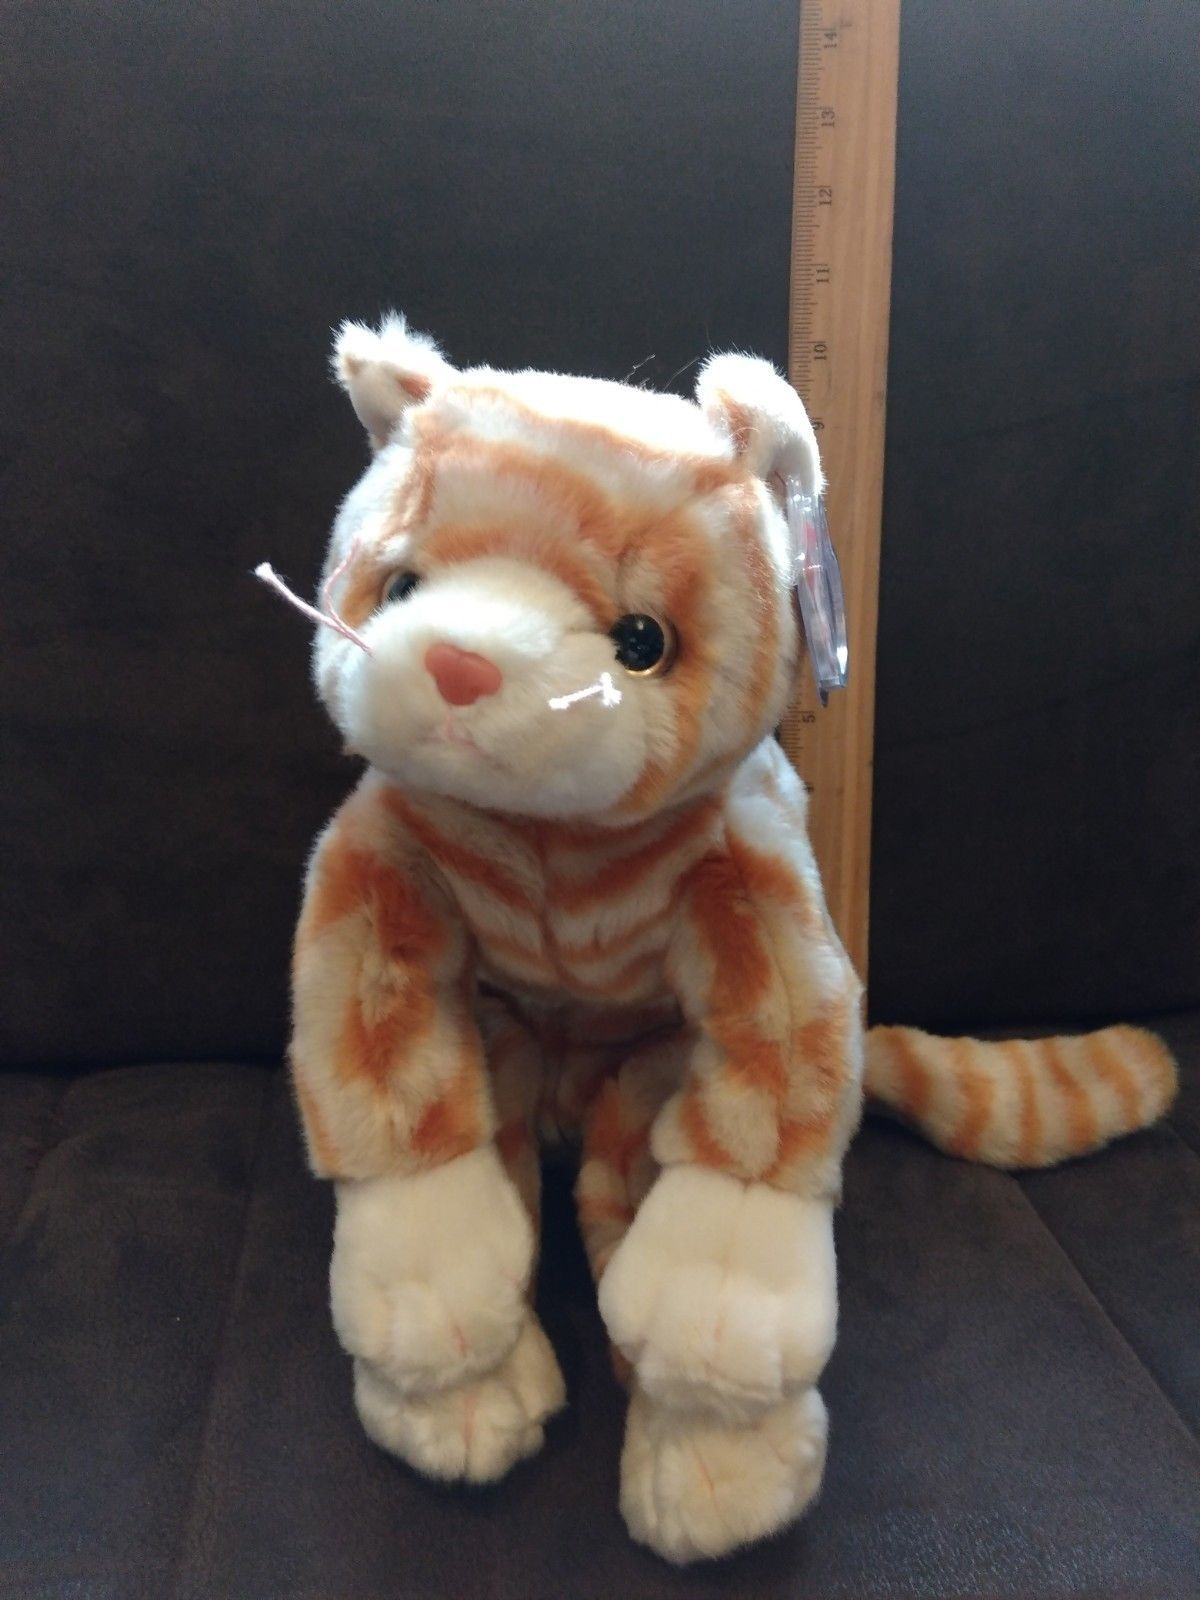 Retired 19207  Ty Beanie Buddy - Amber The Gold Tabby Cat (10 Inch) - Mwmts  Stuffed Animal Toy -  BUY IT NOW ONLY   14.99 on  eBay  retired  beanie   buddy ... 19a913f466fa